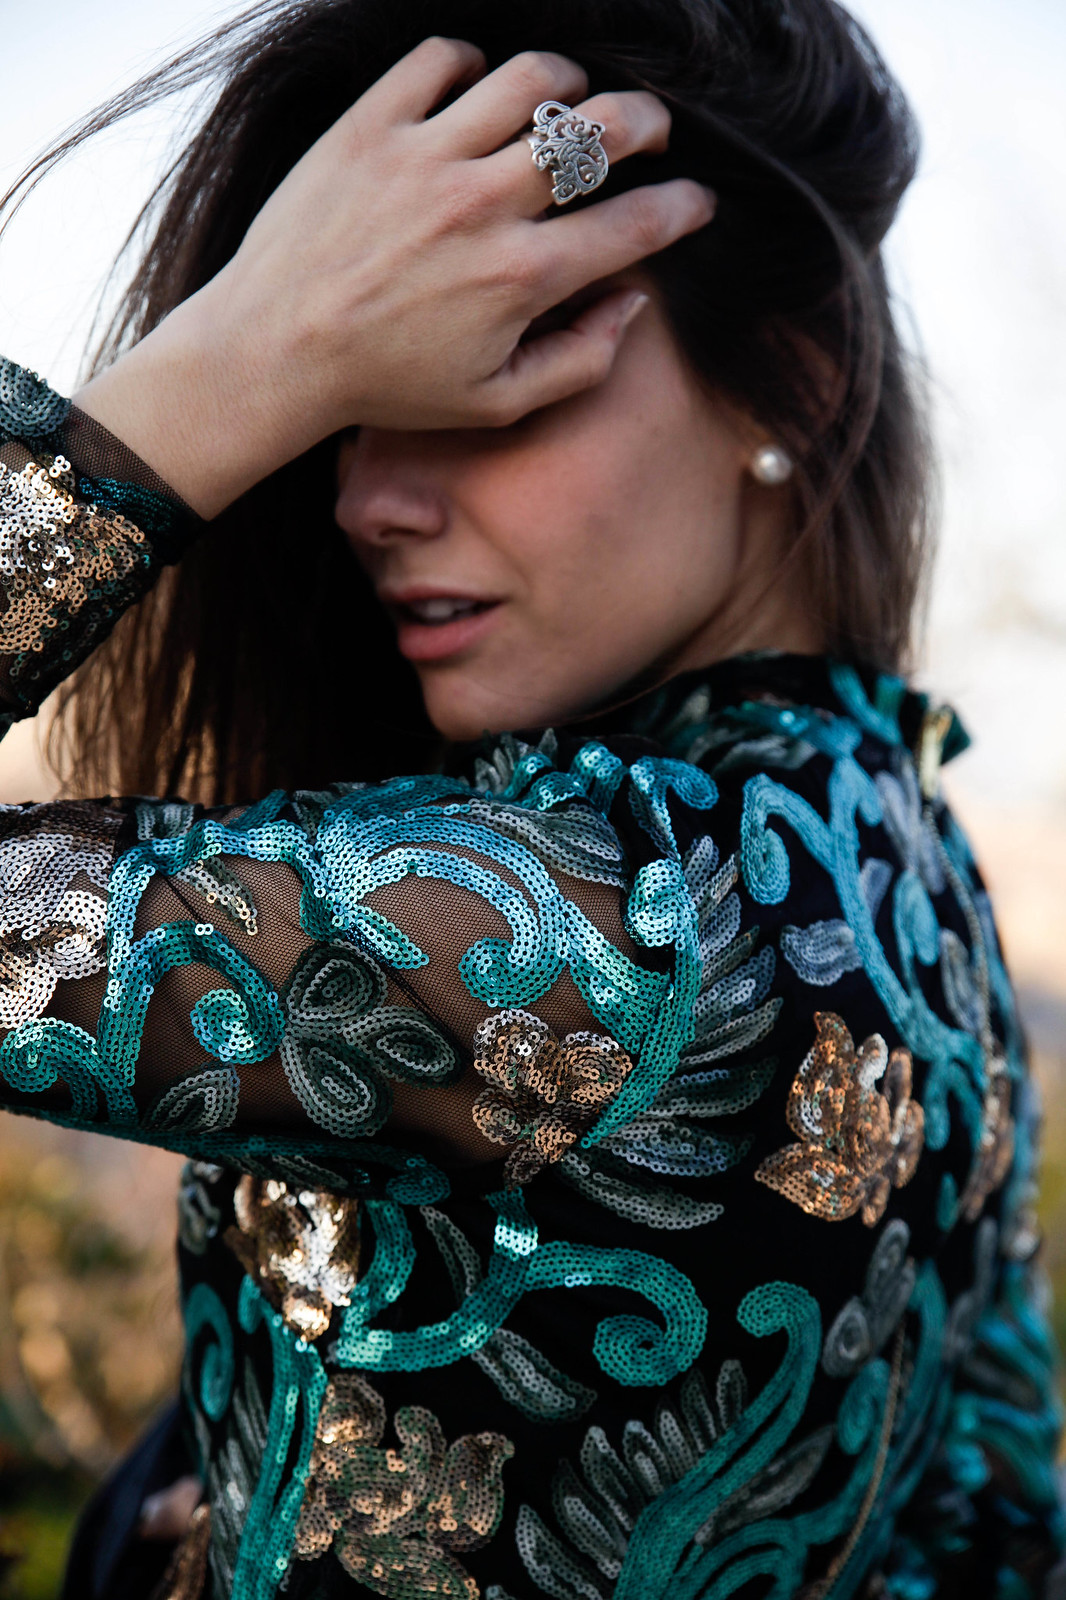 04_Green_sequins_dress_outfit_the_guest_girl_theguestgirl_laura_santolaria_fashion_blogger_danity_paris_influencer_barcelona